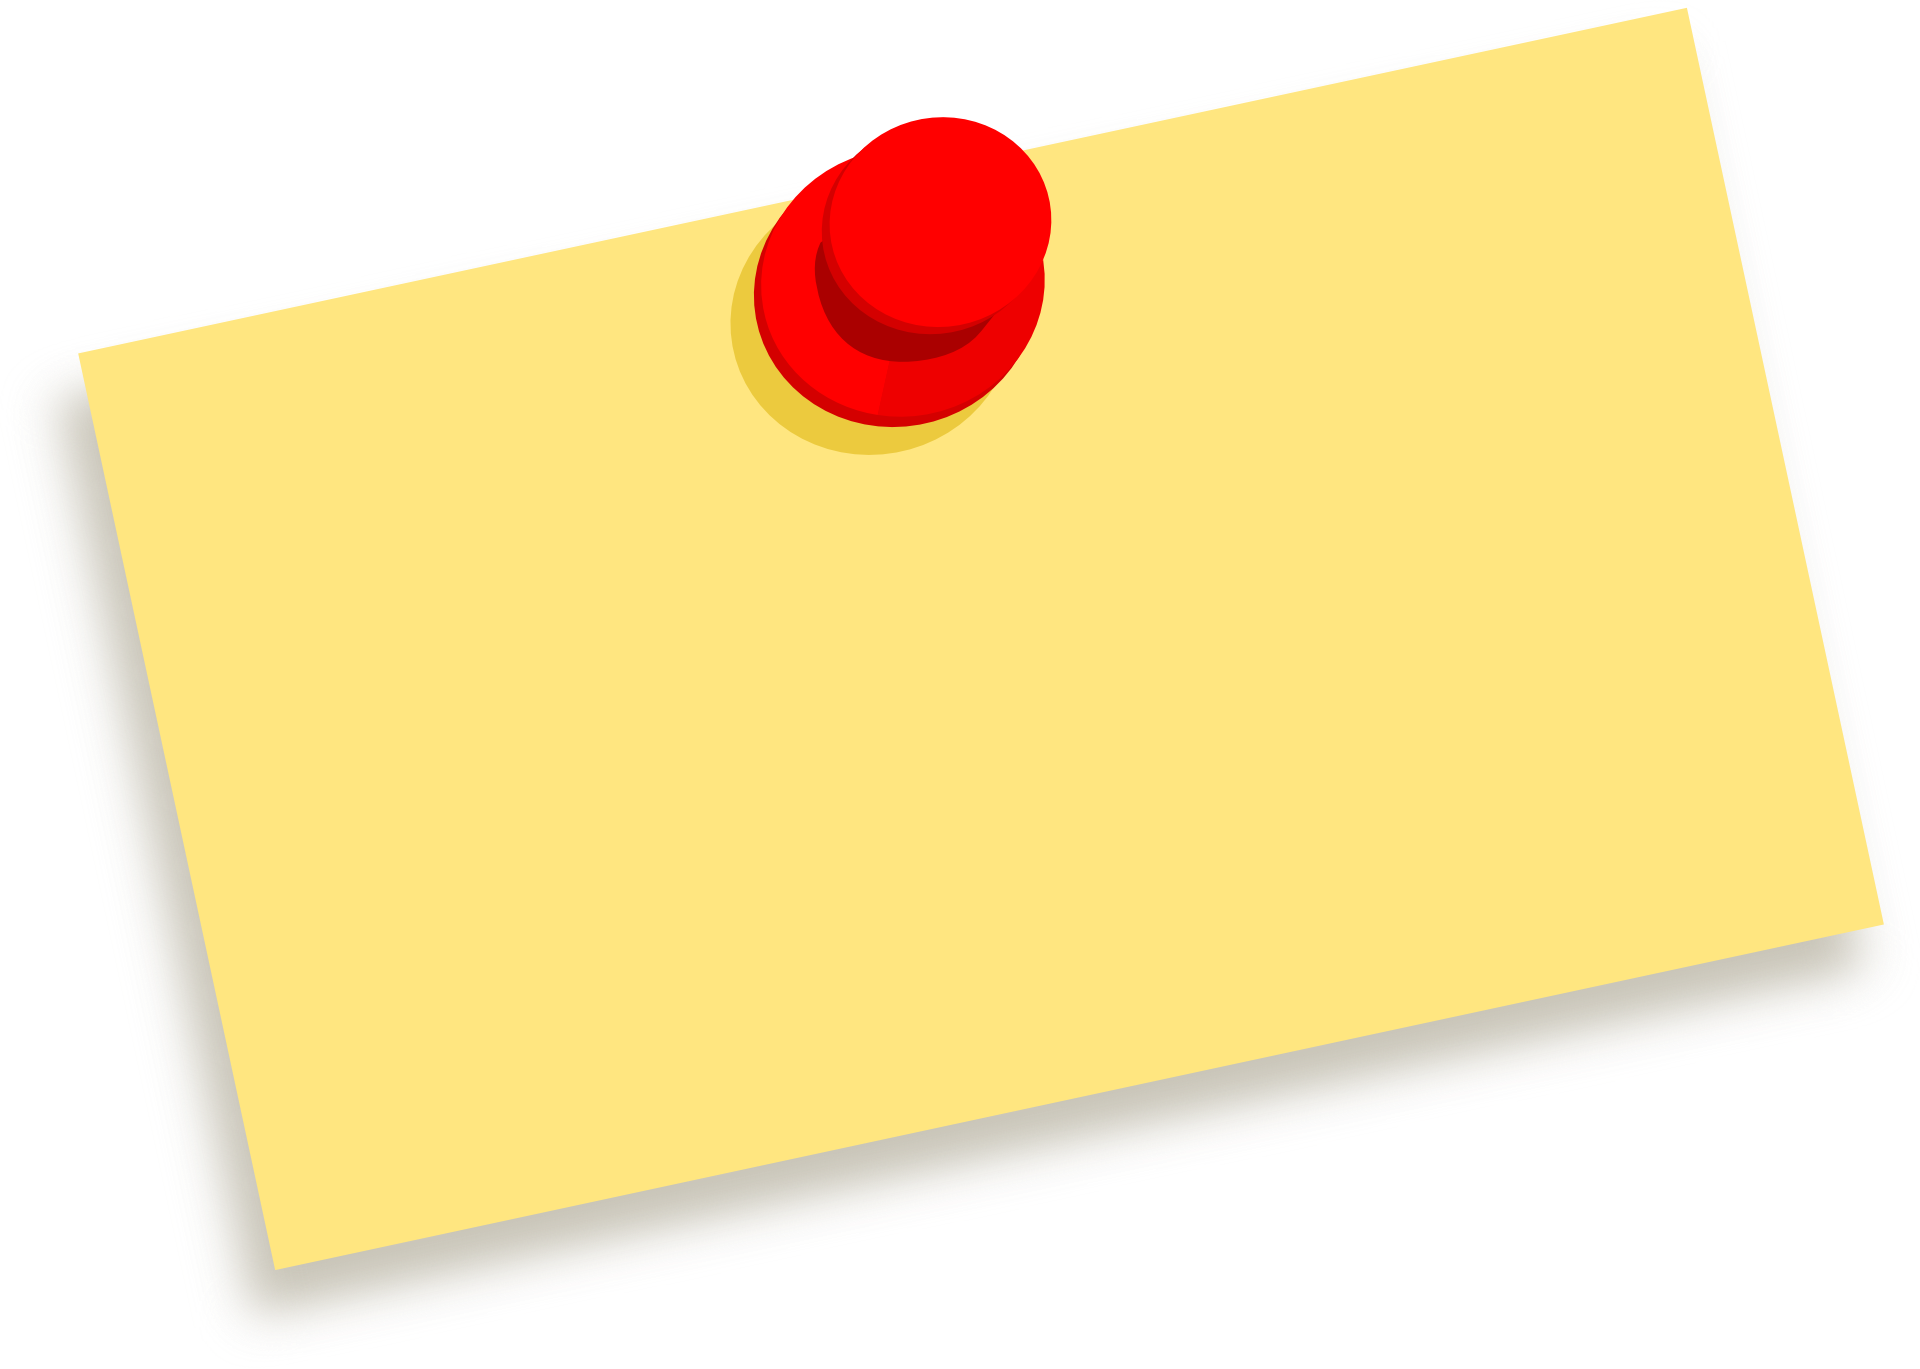 Envelope clipart rectangle object. Post it note paper